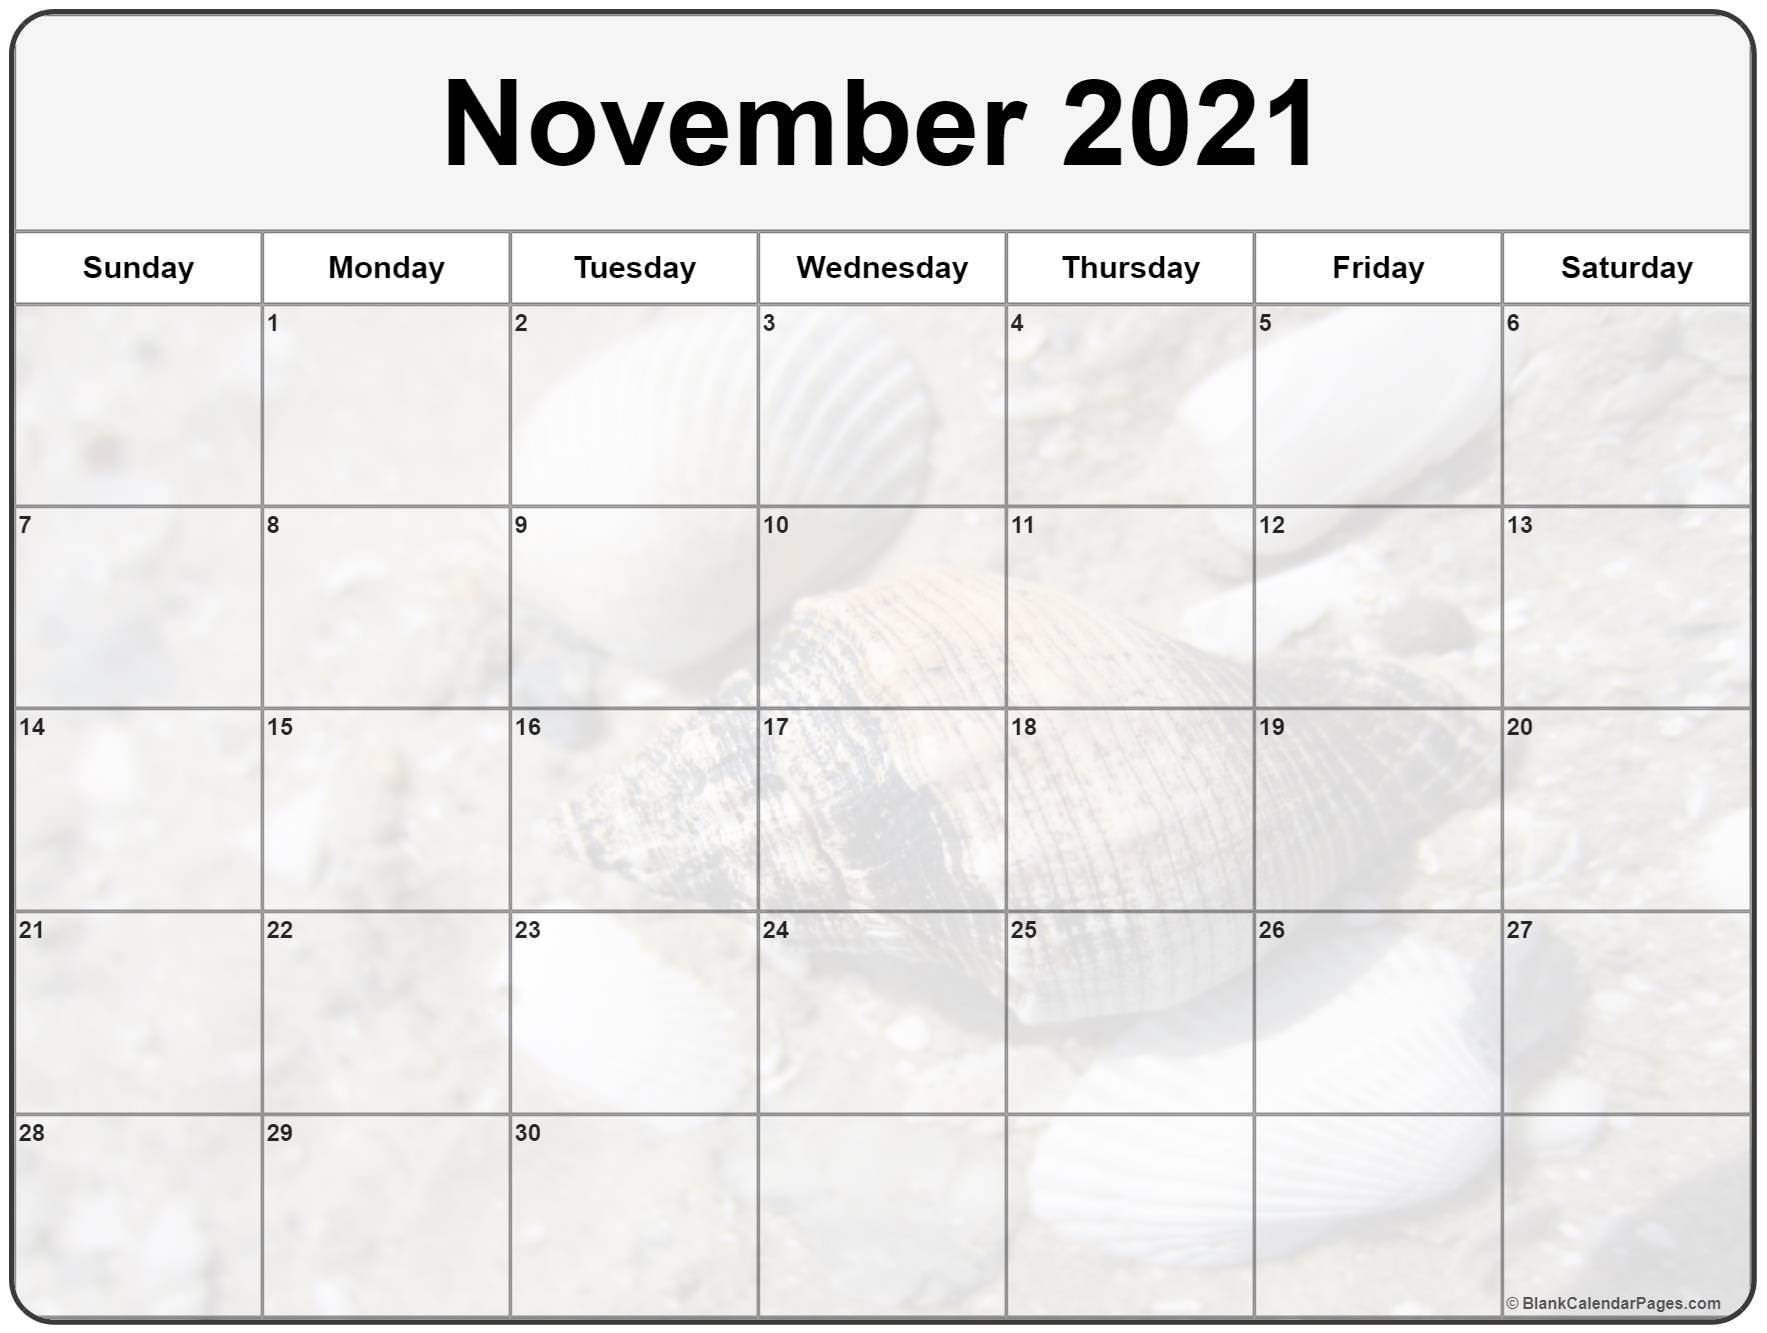 November 2021 image calendar  with cute seashells filters